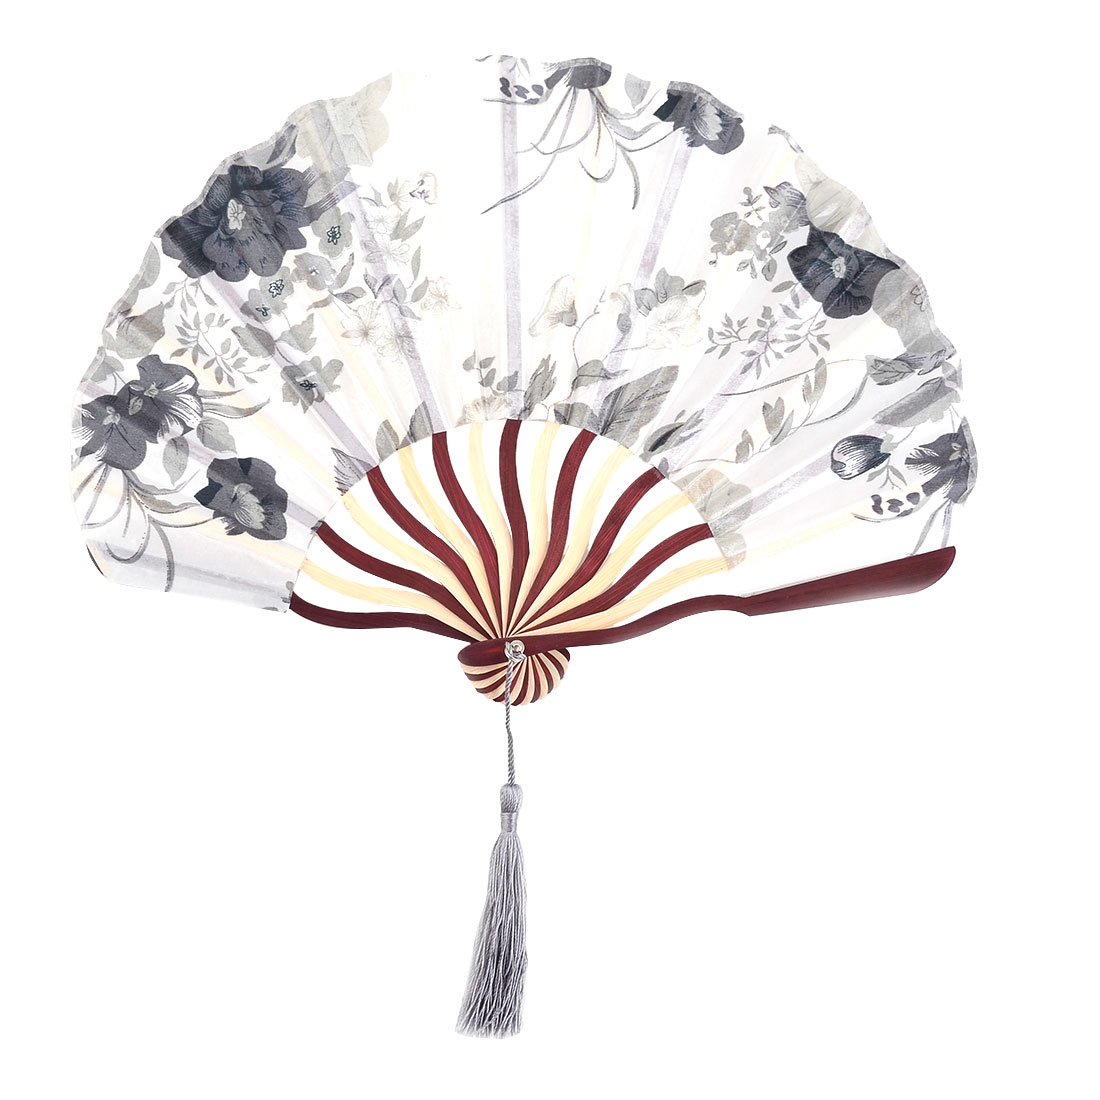 Dance Polyester Flower Print Tassel Decor Handicraft Summer Handheld Hand Fan 8.9 Inches Length